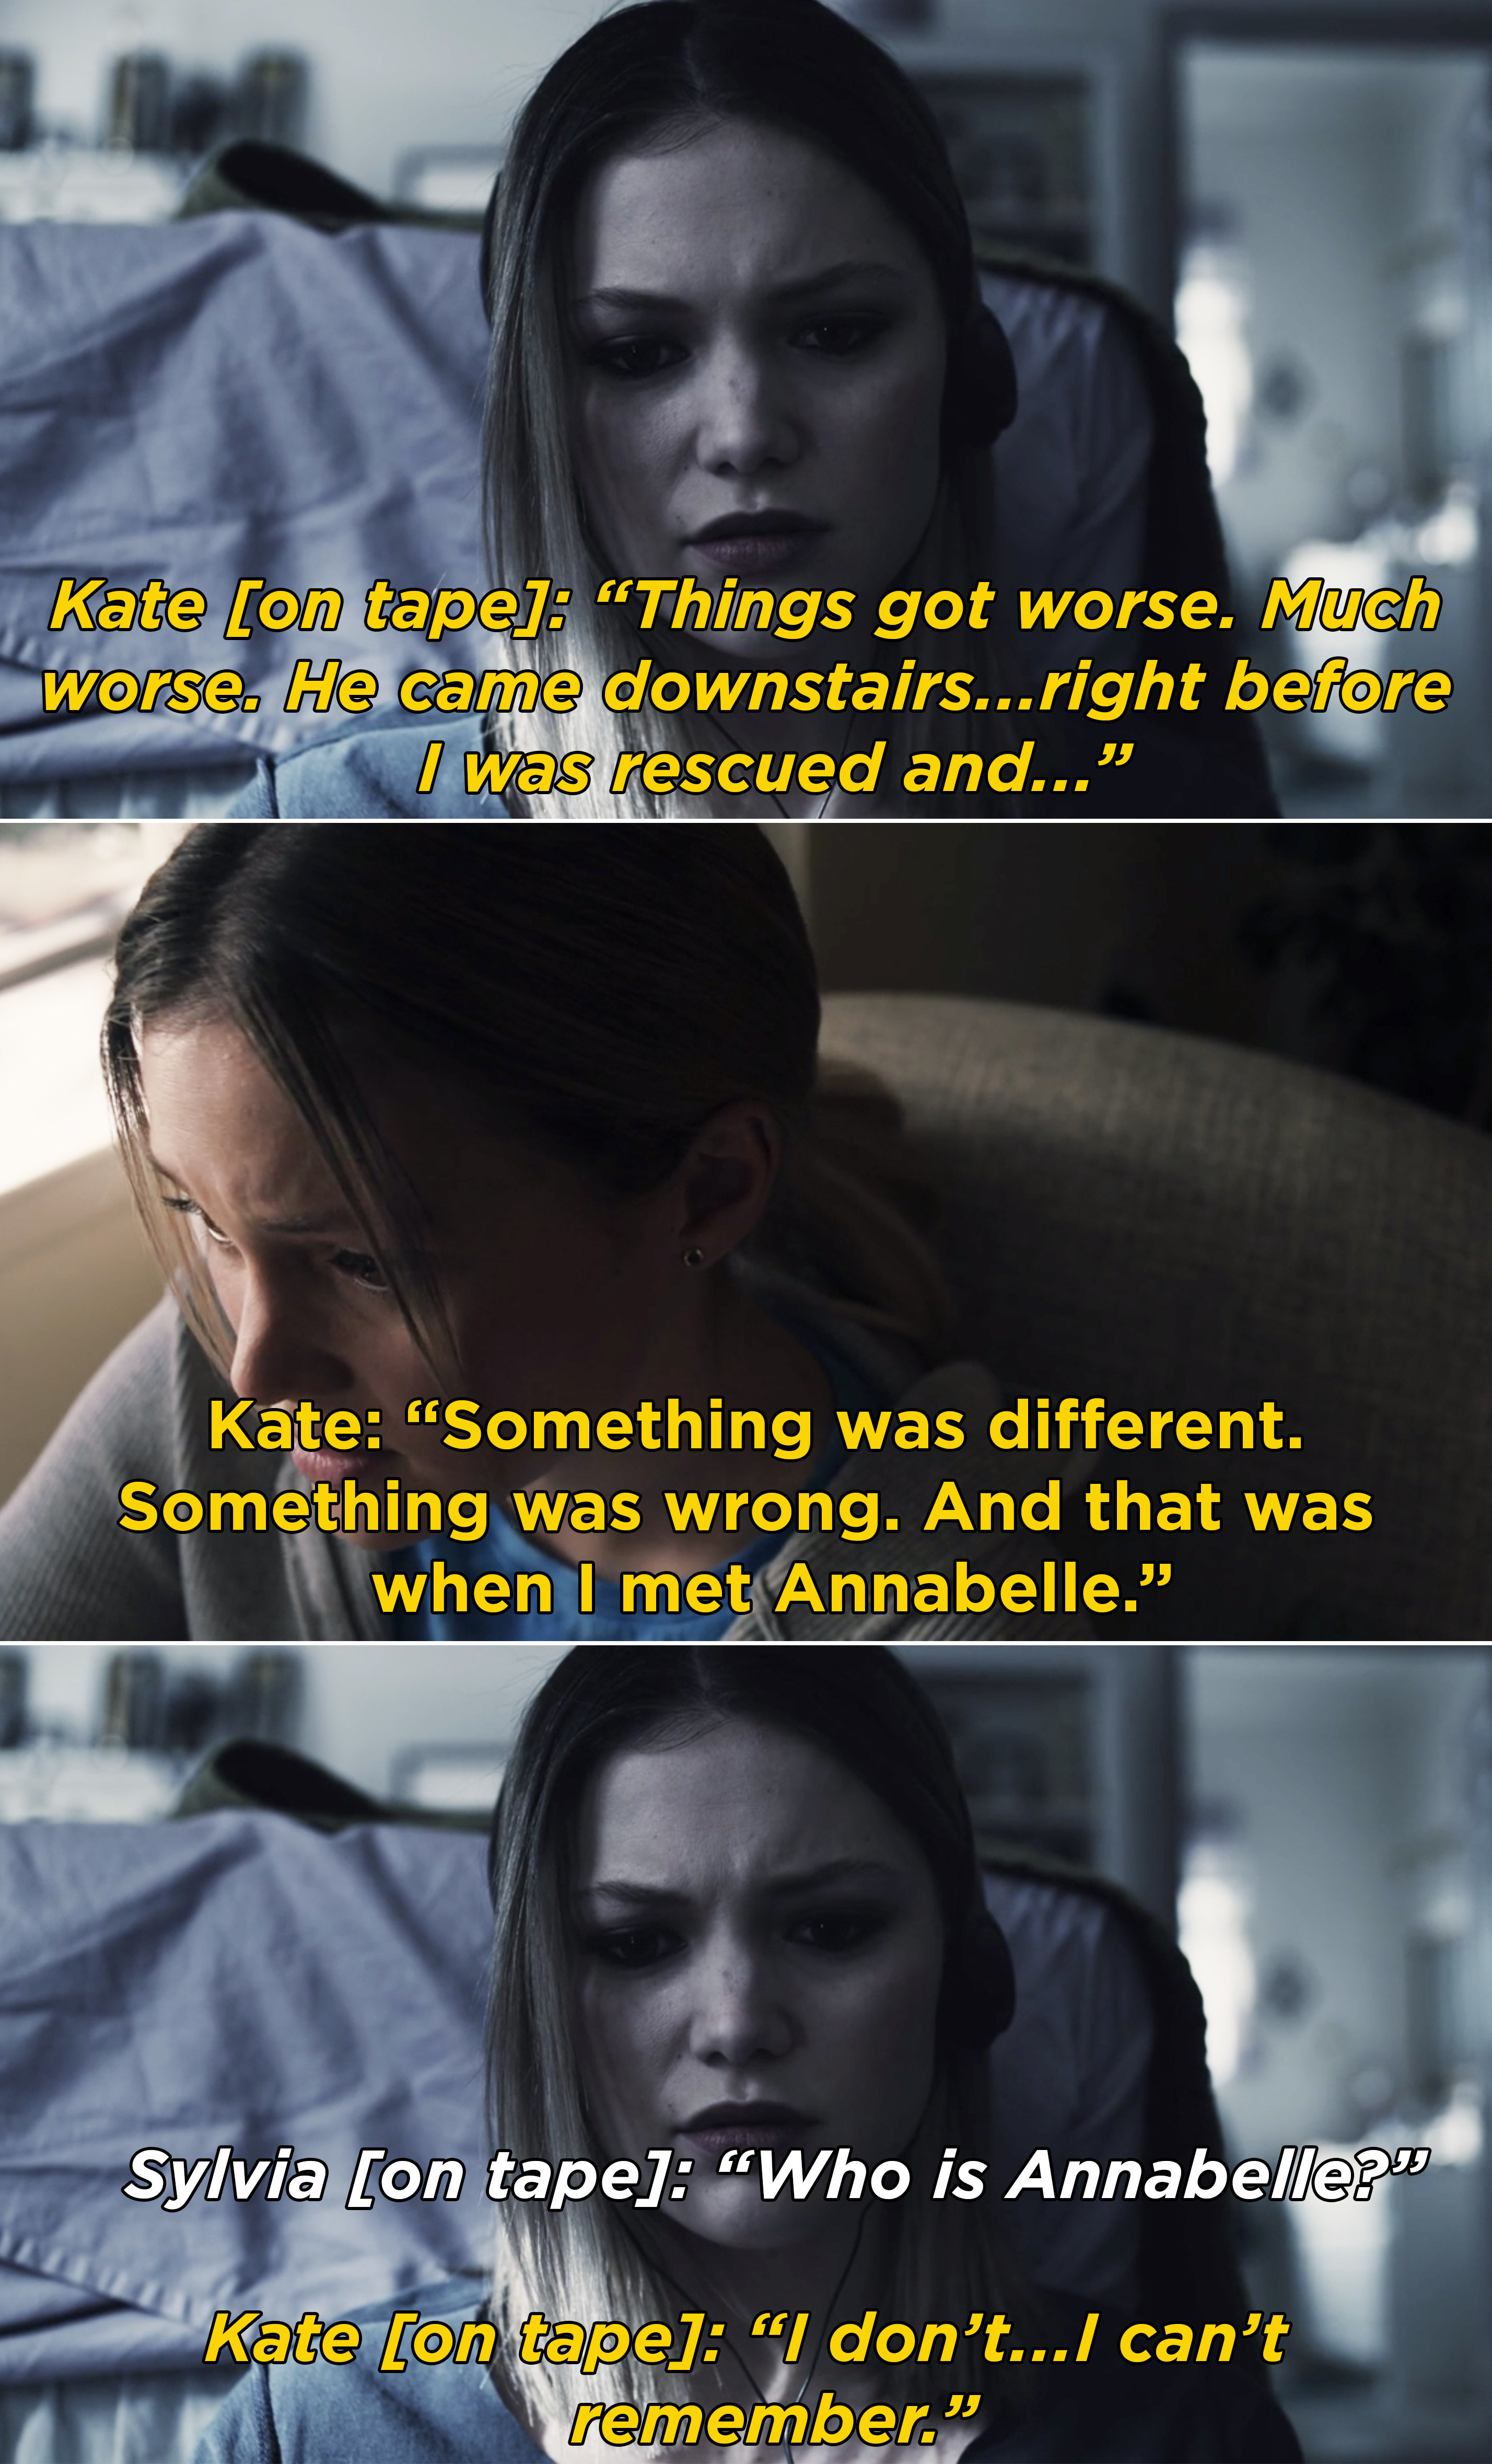 """Kate listening to a tape of herself saying, """"Something was different. Something was wrong. And that was when I met Annabelle"""""""